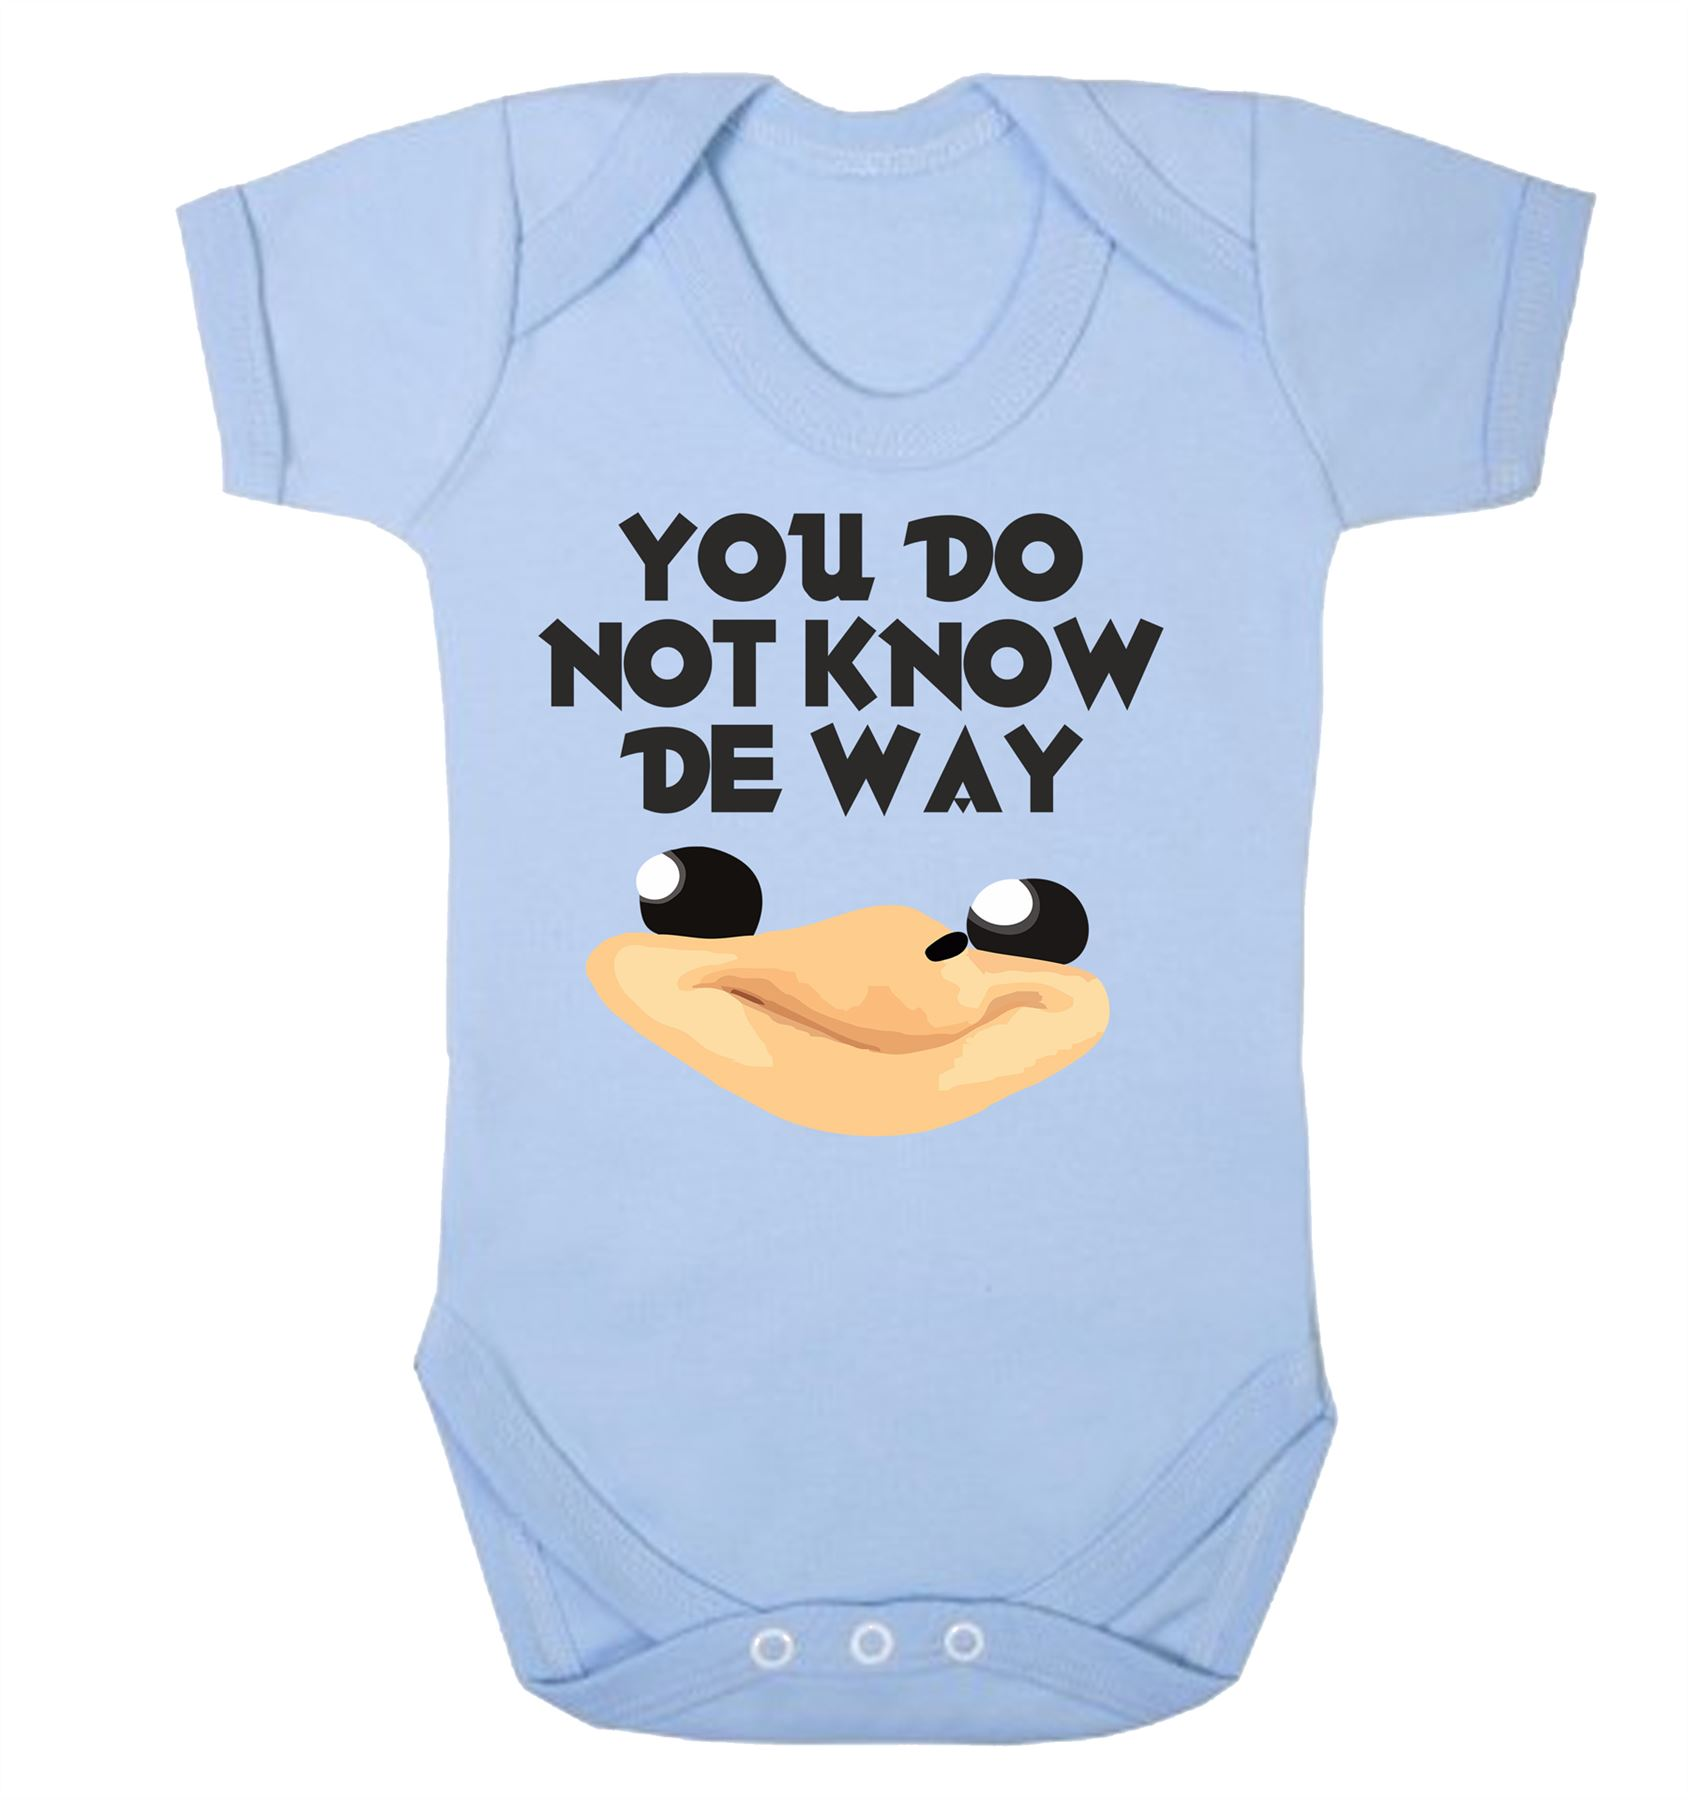 /'Move out of the way Barbie/' Cute funny slogan babygrow baby vest